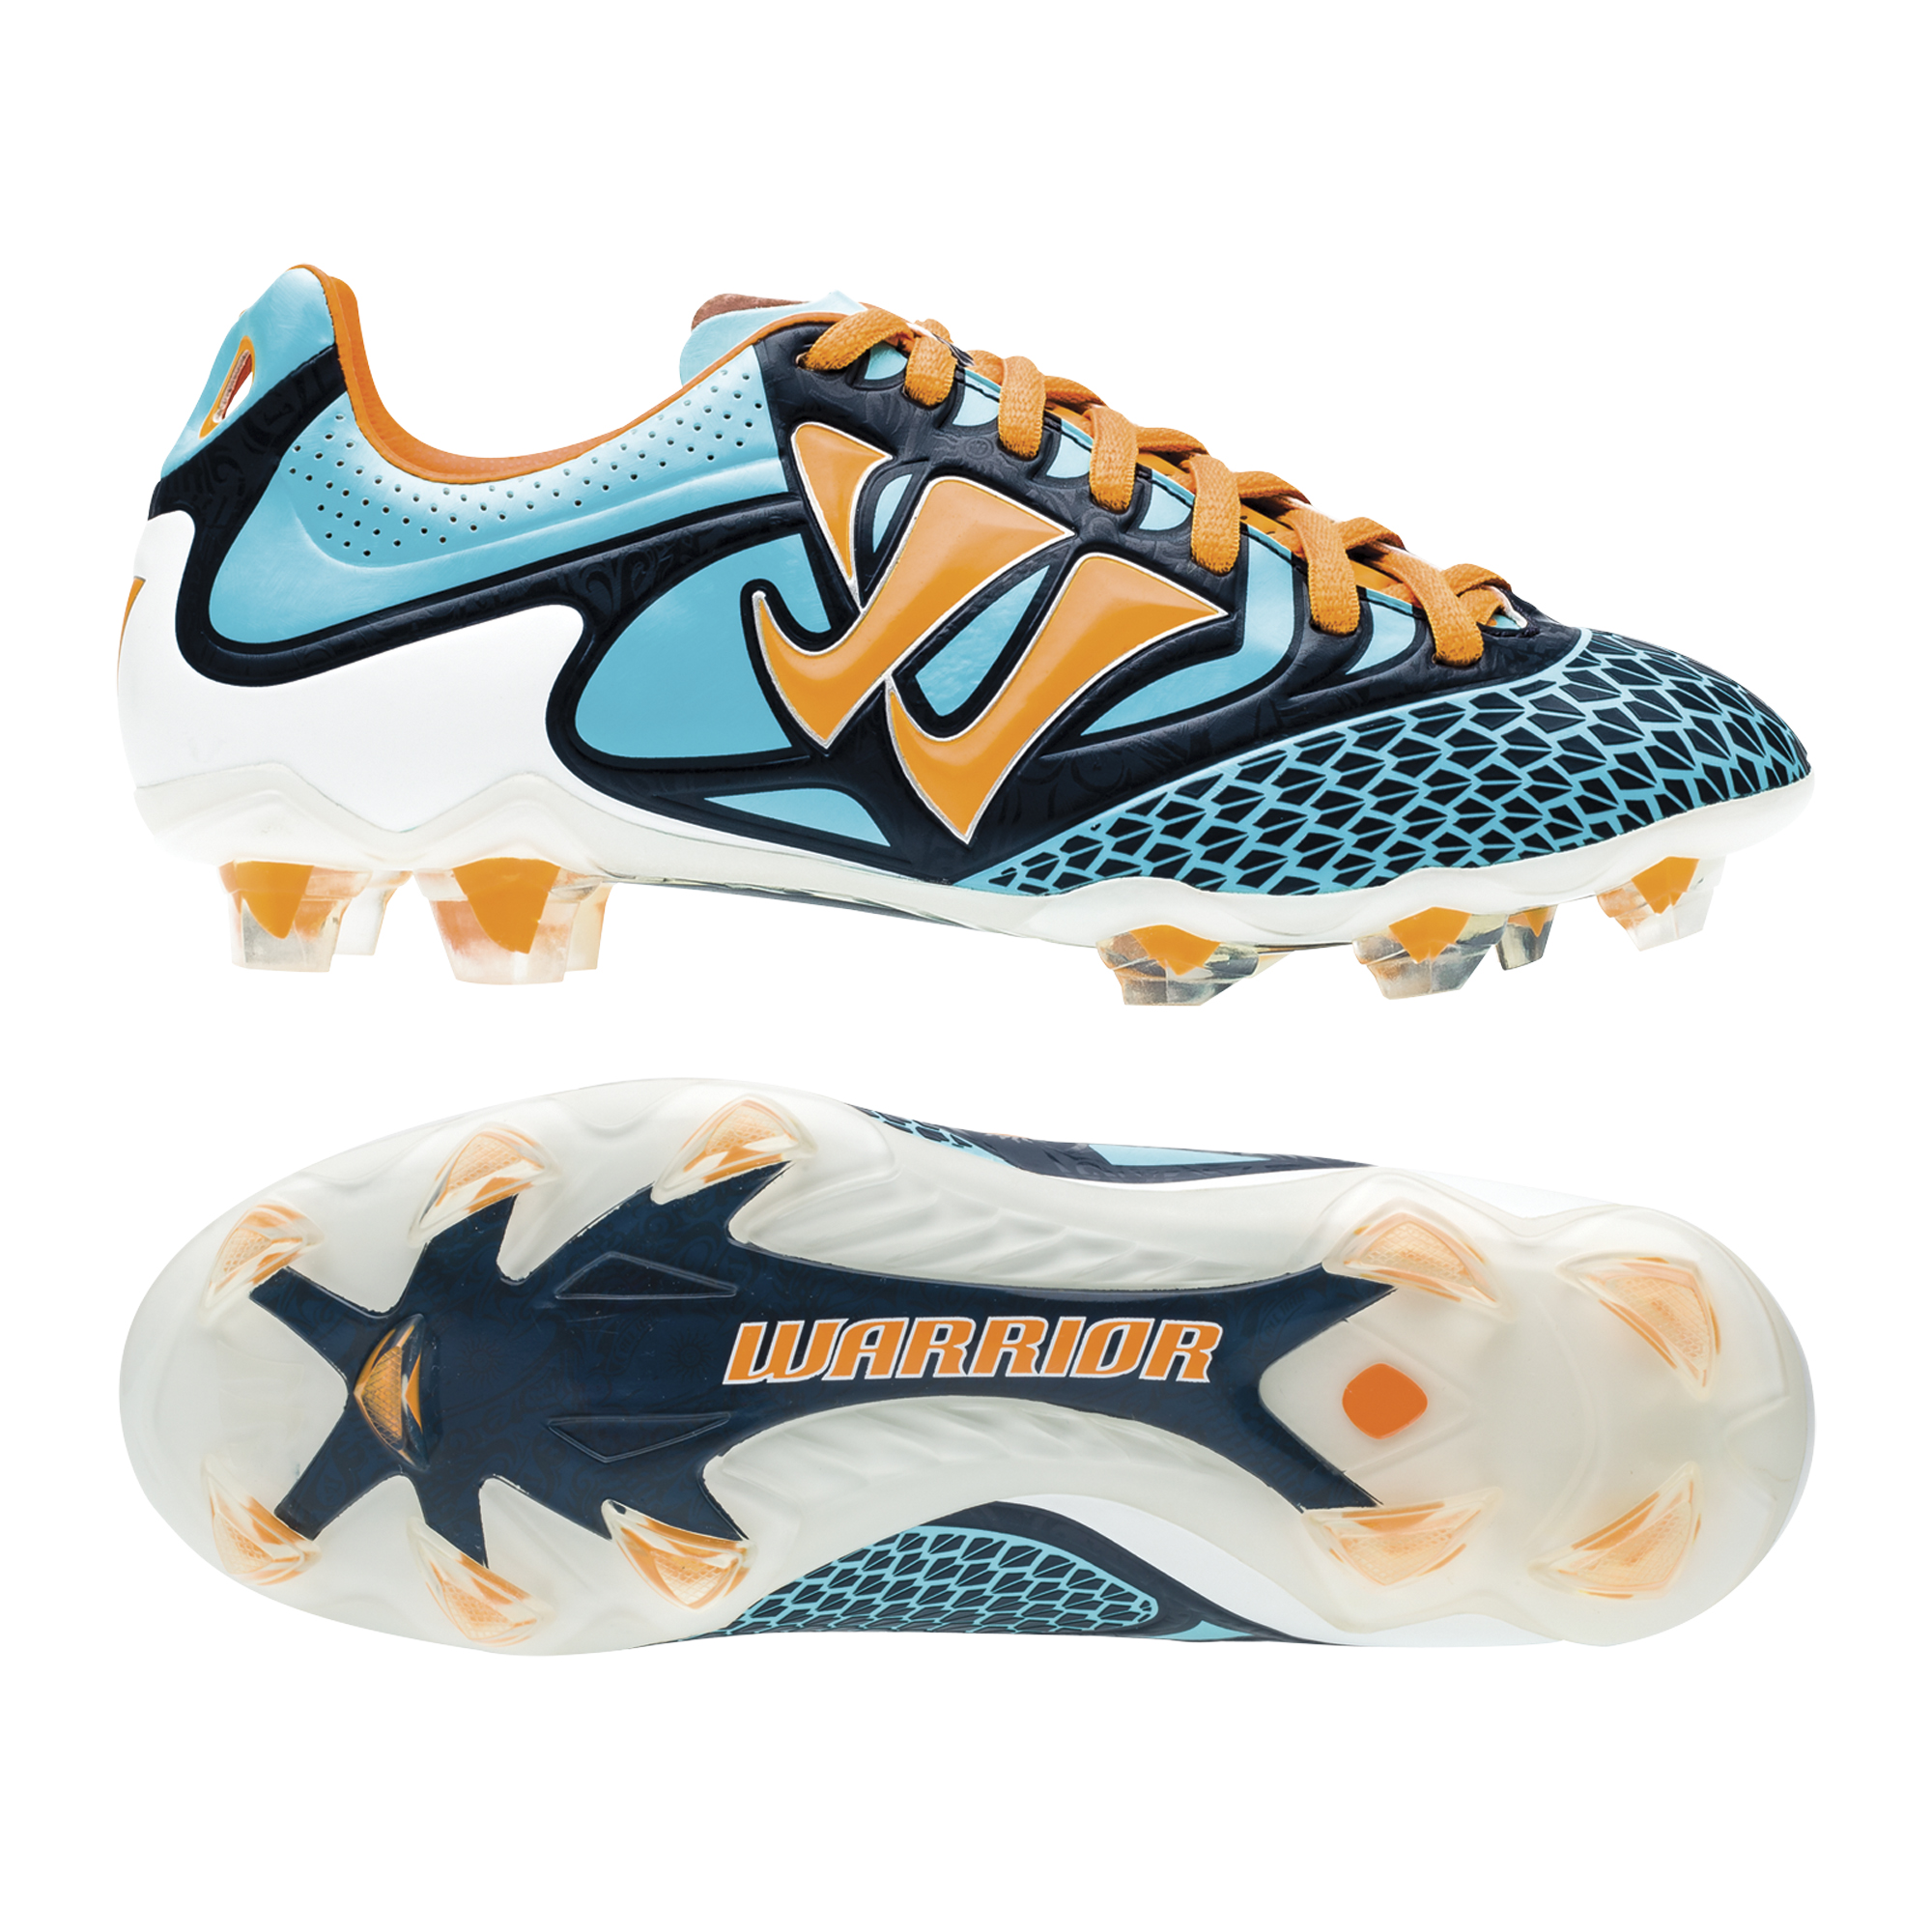 Warrior Sports Skreamer Combat Firm Ground Football Boots - Blue Radiance/Bright Marigold/Insignia Blue - Kids